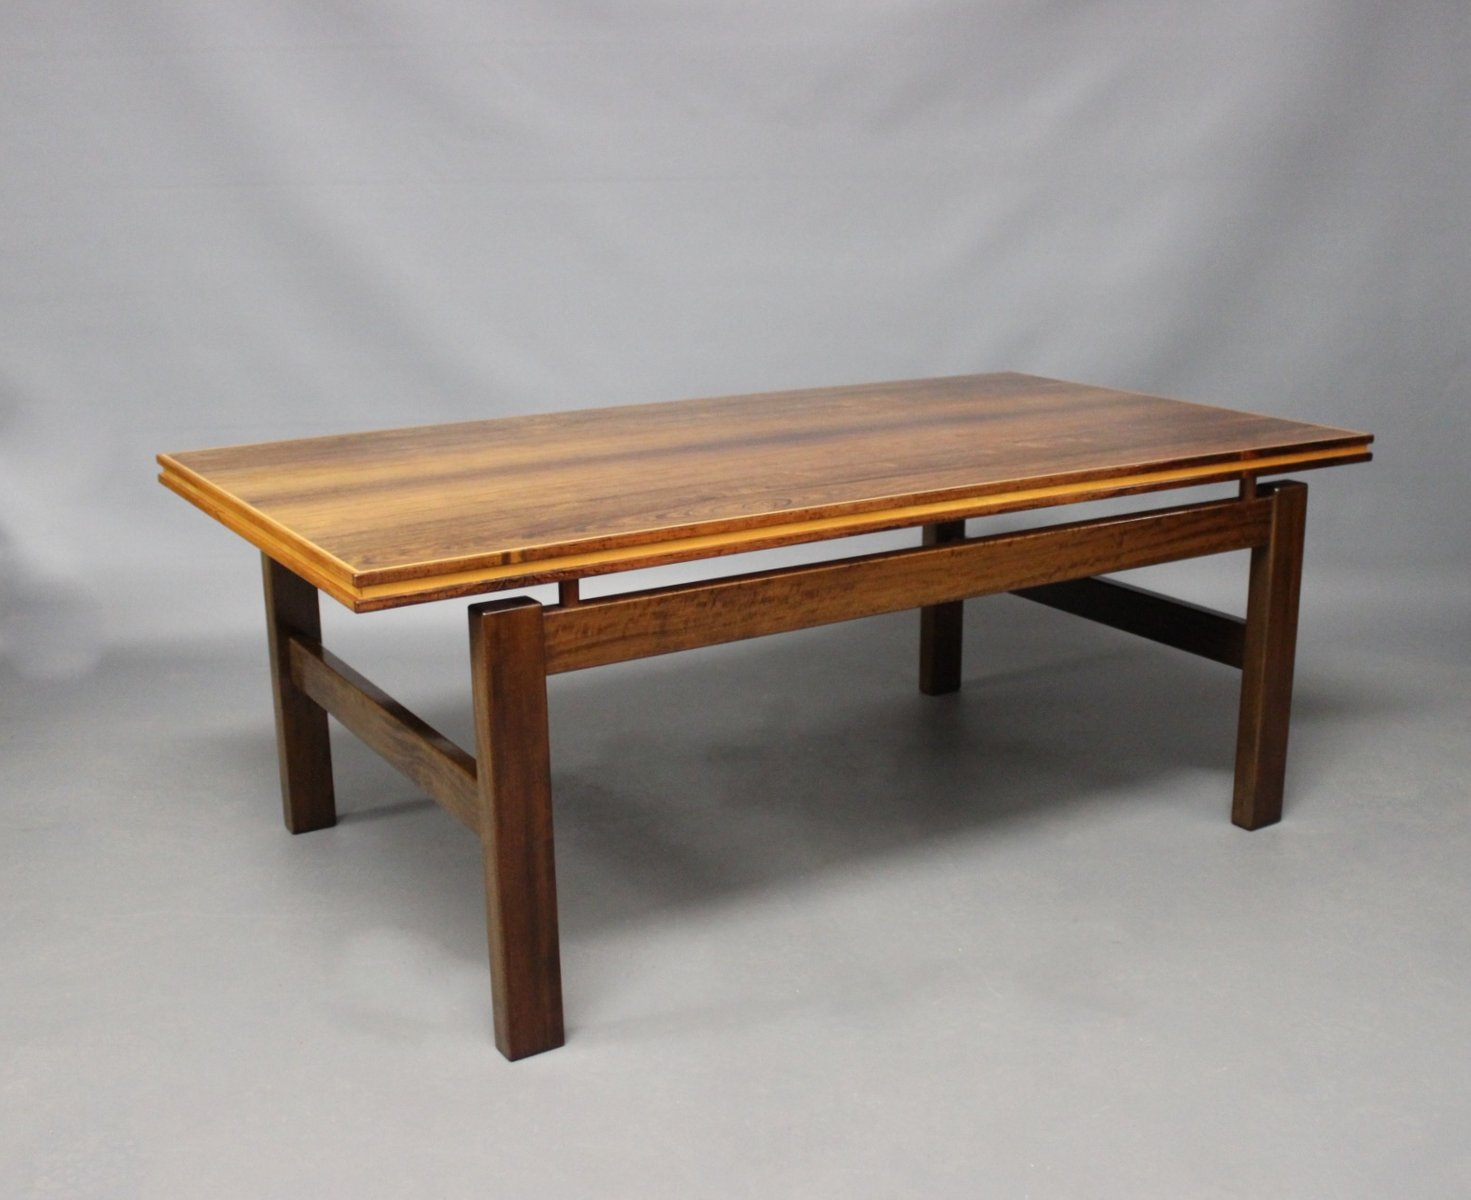 Attractive Danish Rosewood Coffee Table With Floating Top, 1960s